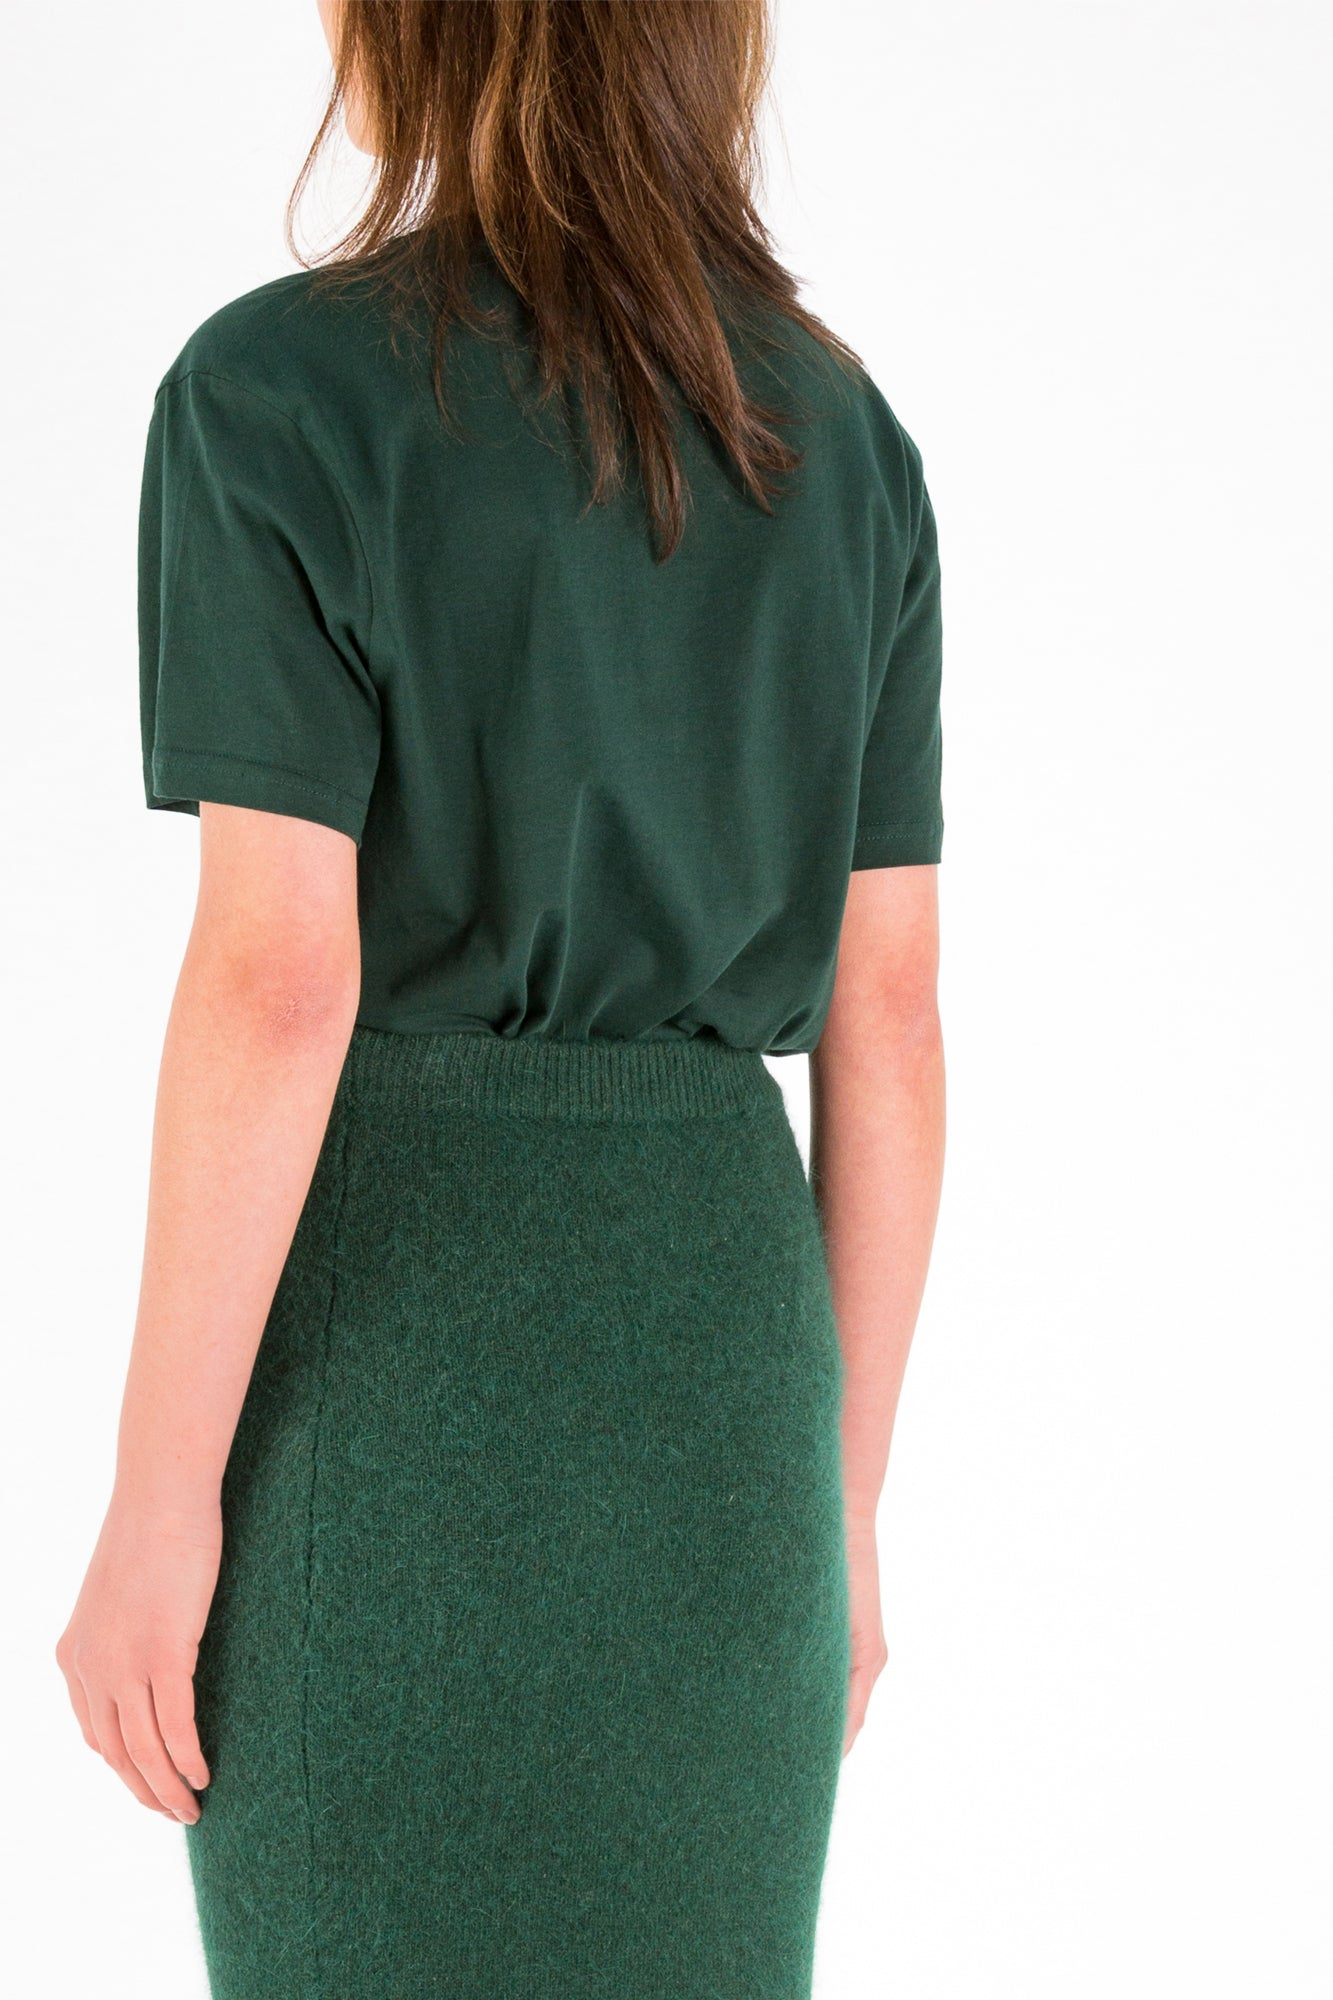 Basic | Top | Dark Green. Designed by Eric Frenken. Relaxed fit cotton T-Shirt with two darts in the waist at the back panel. Model wears a size 36.